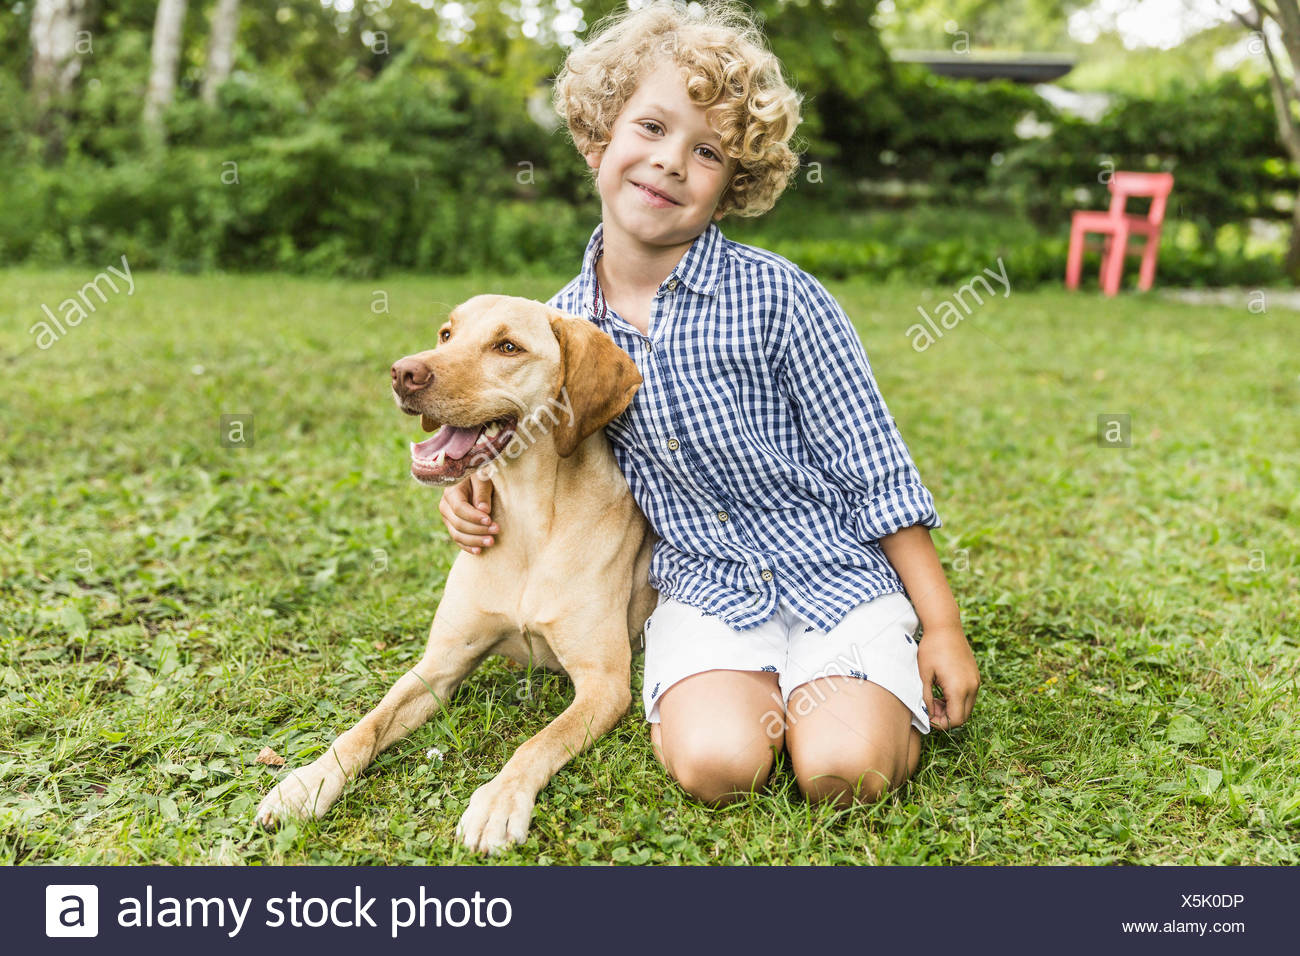 Portrait of boy sitting with dog in garden - Stock Image